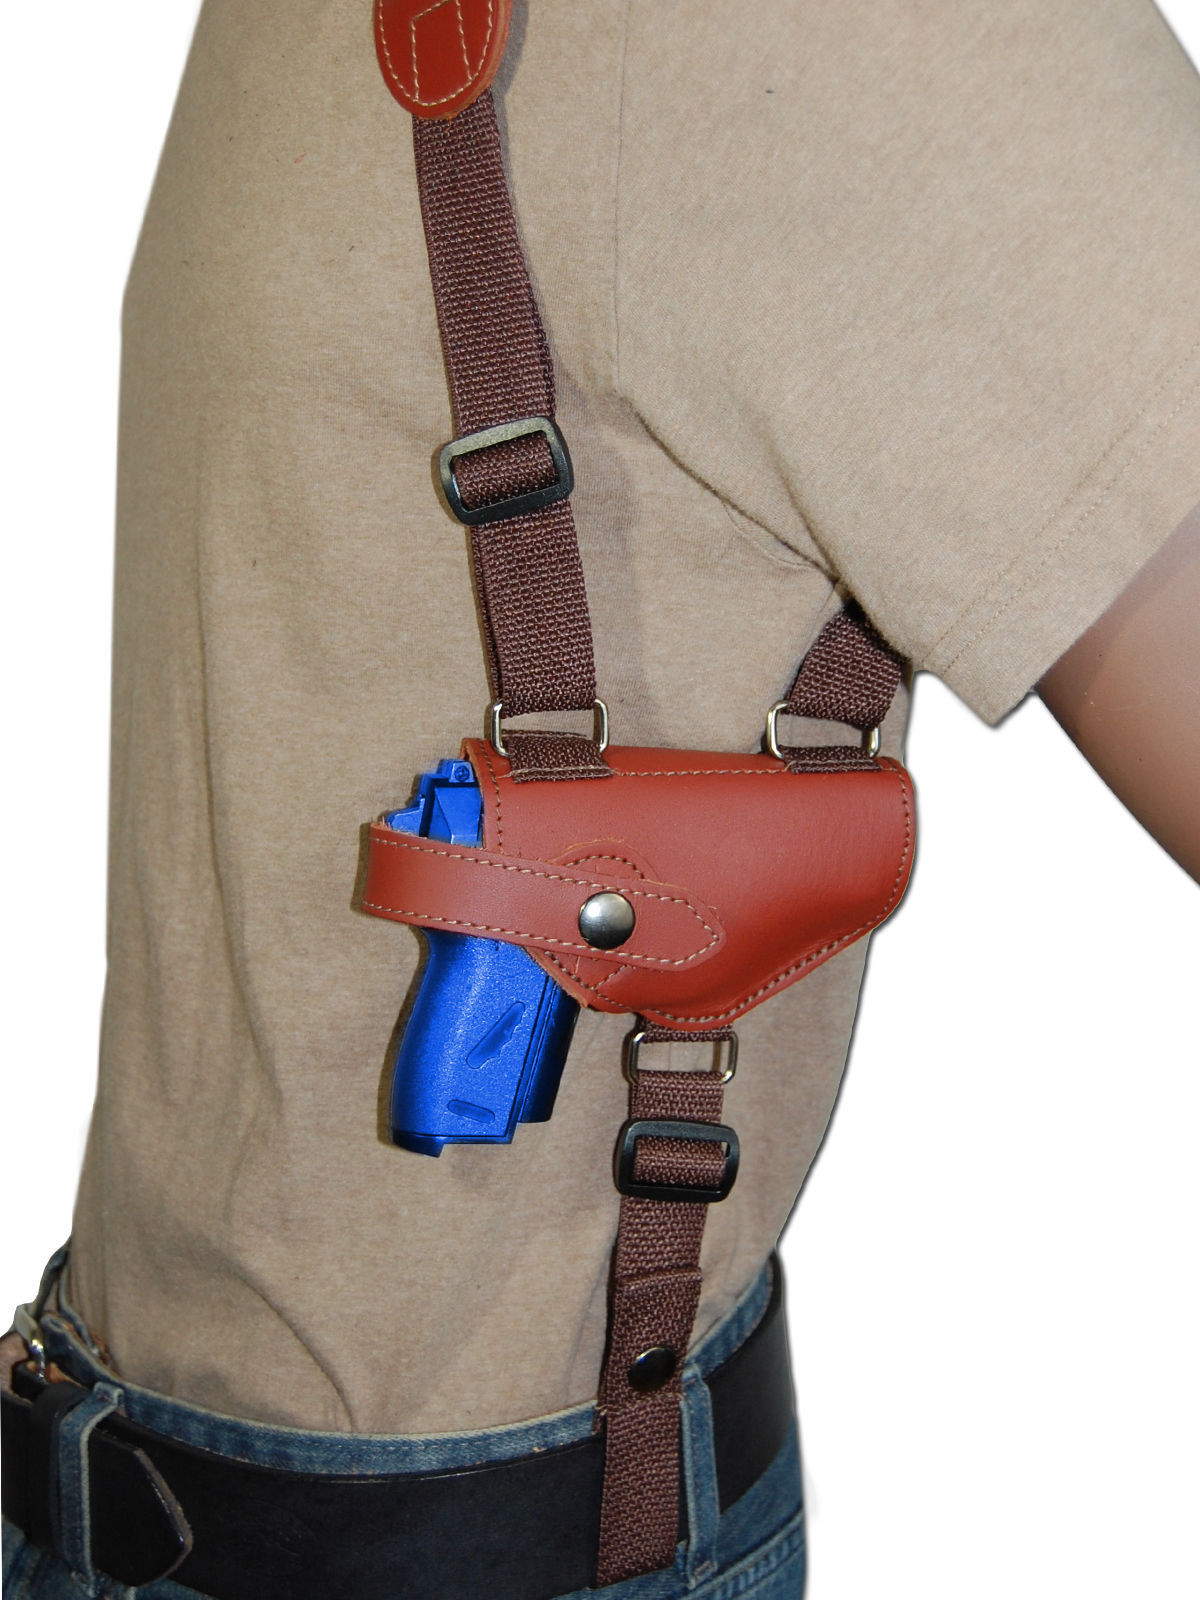 NEW Burgundy Leather Shoulder Holster w/Dbl Mag Pouch Llama, NA Arms Mini-Pocket